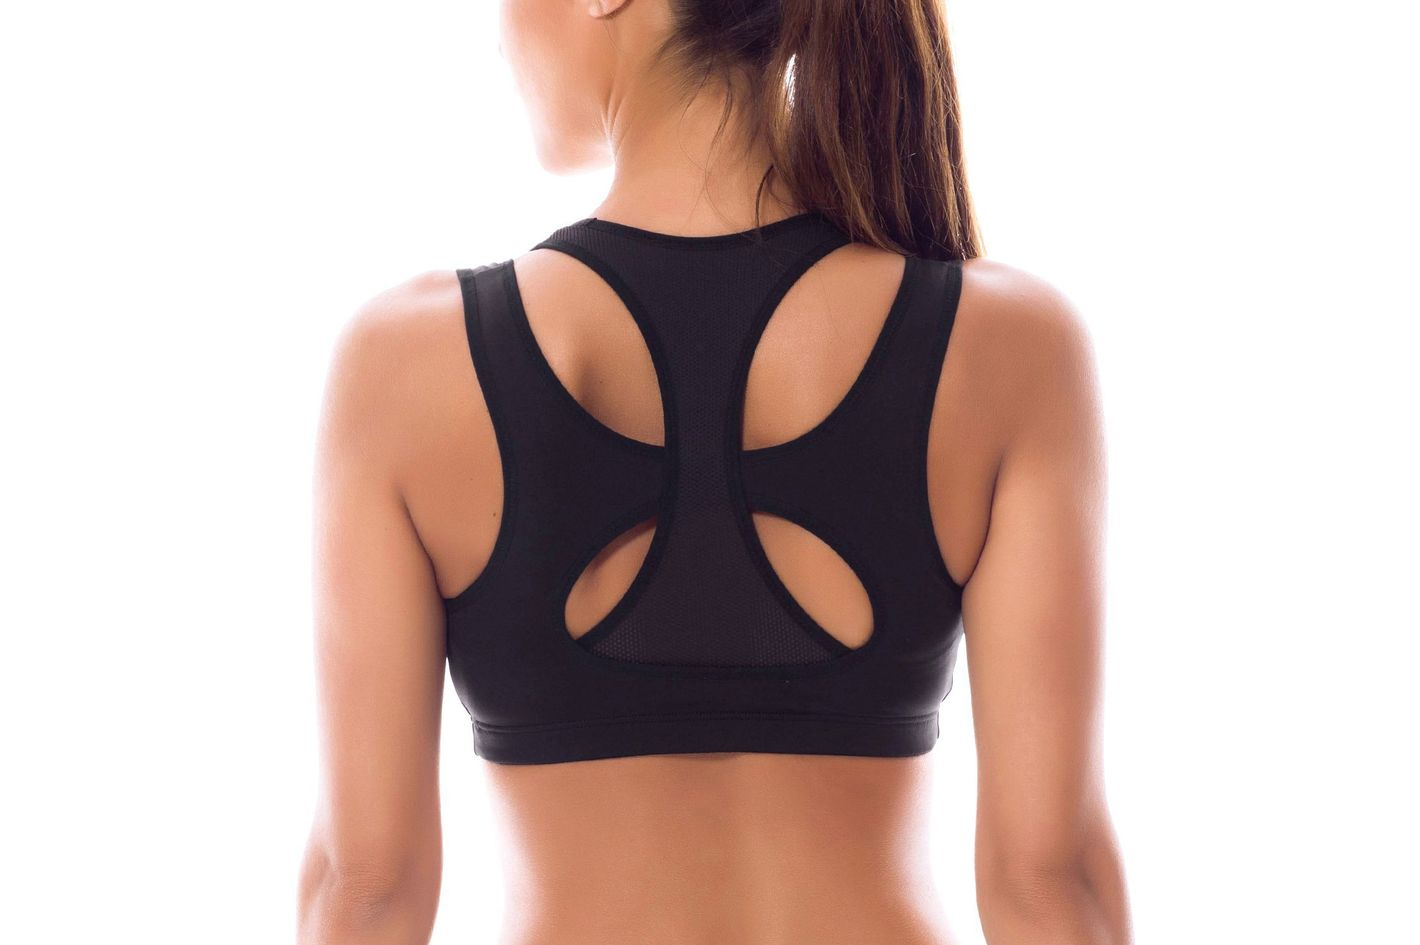 80a61439f5a SYROKAN Women's High Impact Support Wirefree Workout Racerback Sports Bra  Top